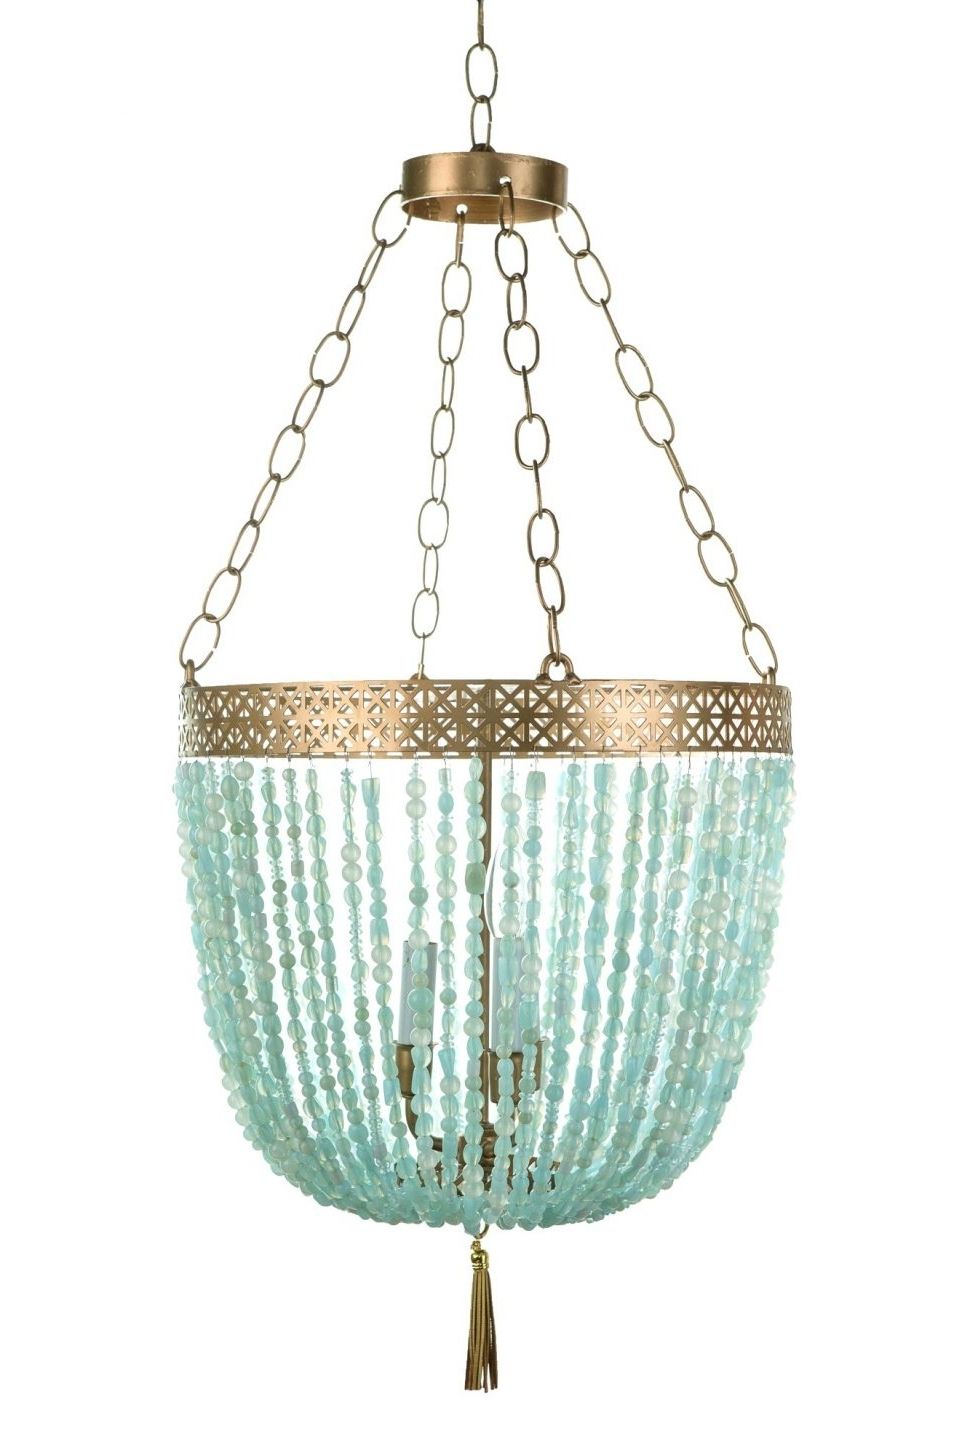 Turquoise Blue Beaded Chandeliers Inside Favorite Chandeliers Design : Magnificent Turquoise Blue Chandelier Light (View 11 of 20)